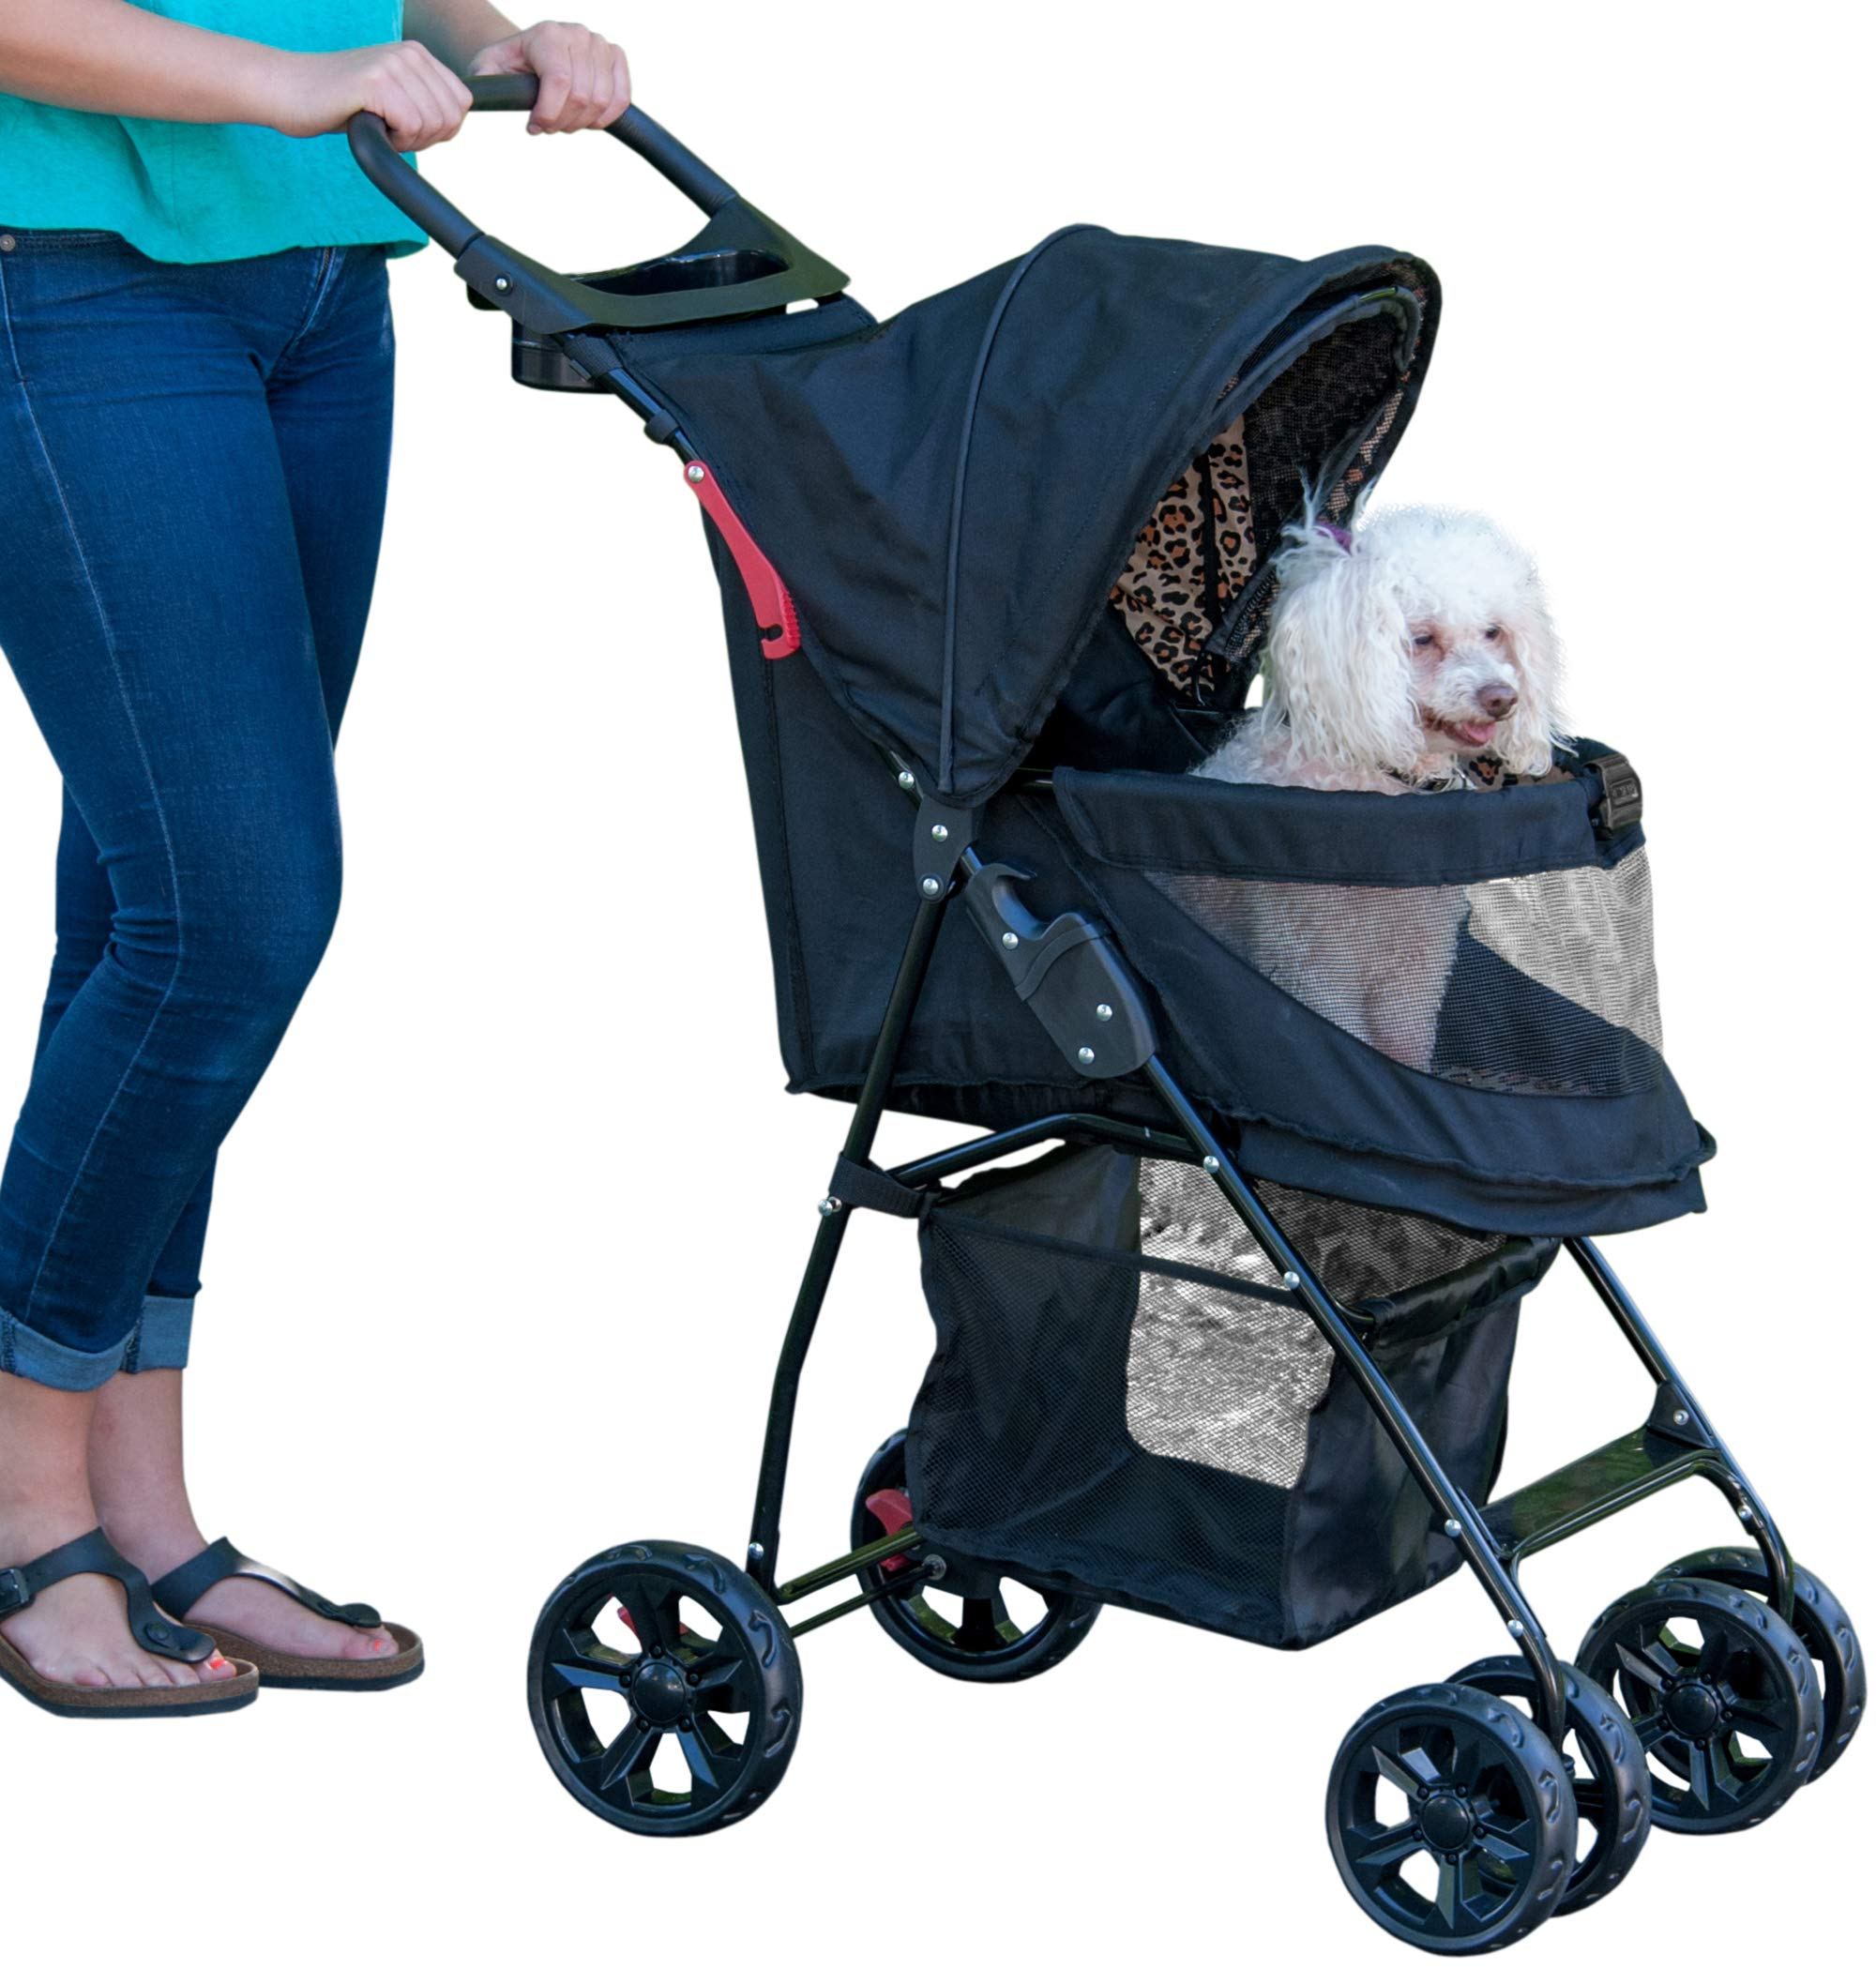 Pet Gear No-Zip Happy Trails Lite Pet Stroller, Zipperless Entry, Jaguar by Pet Gear